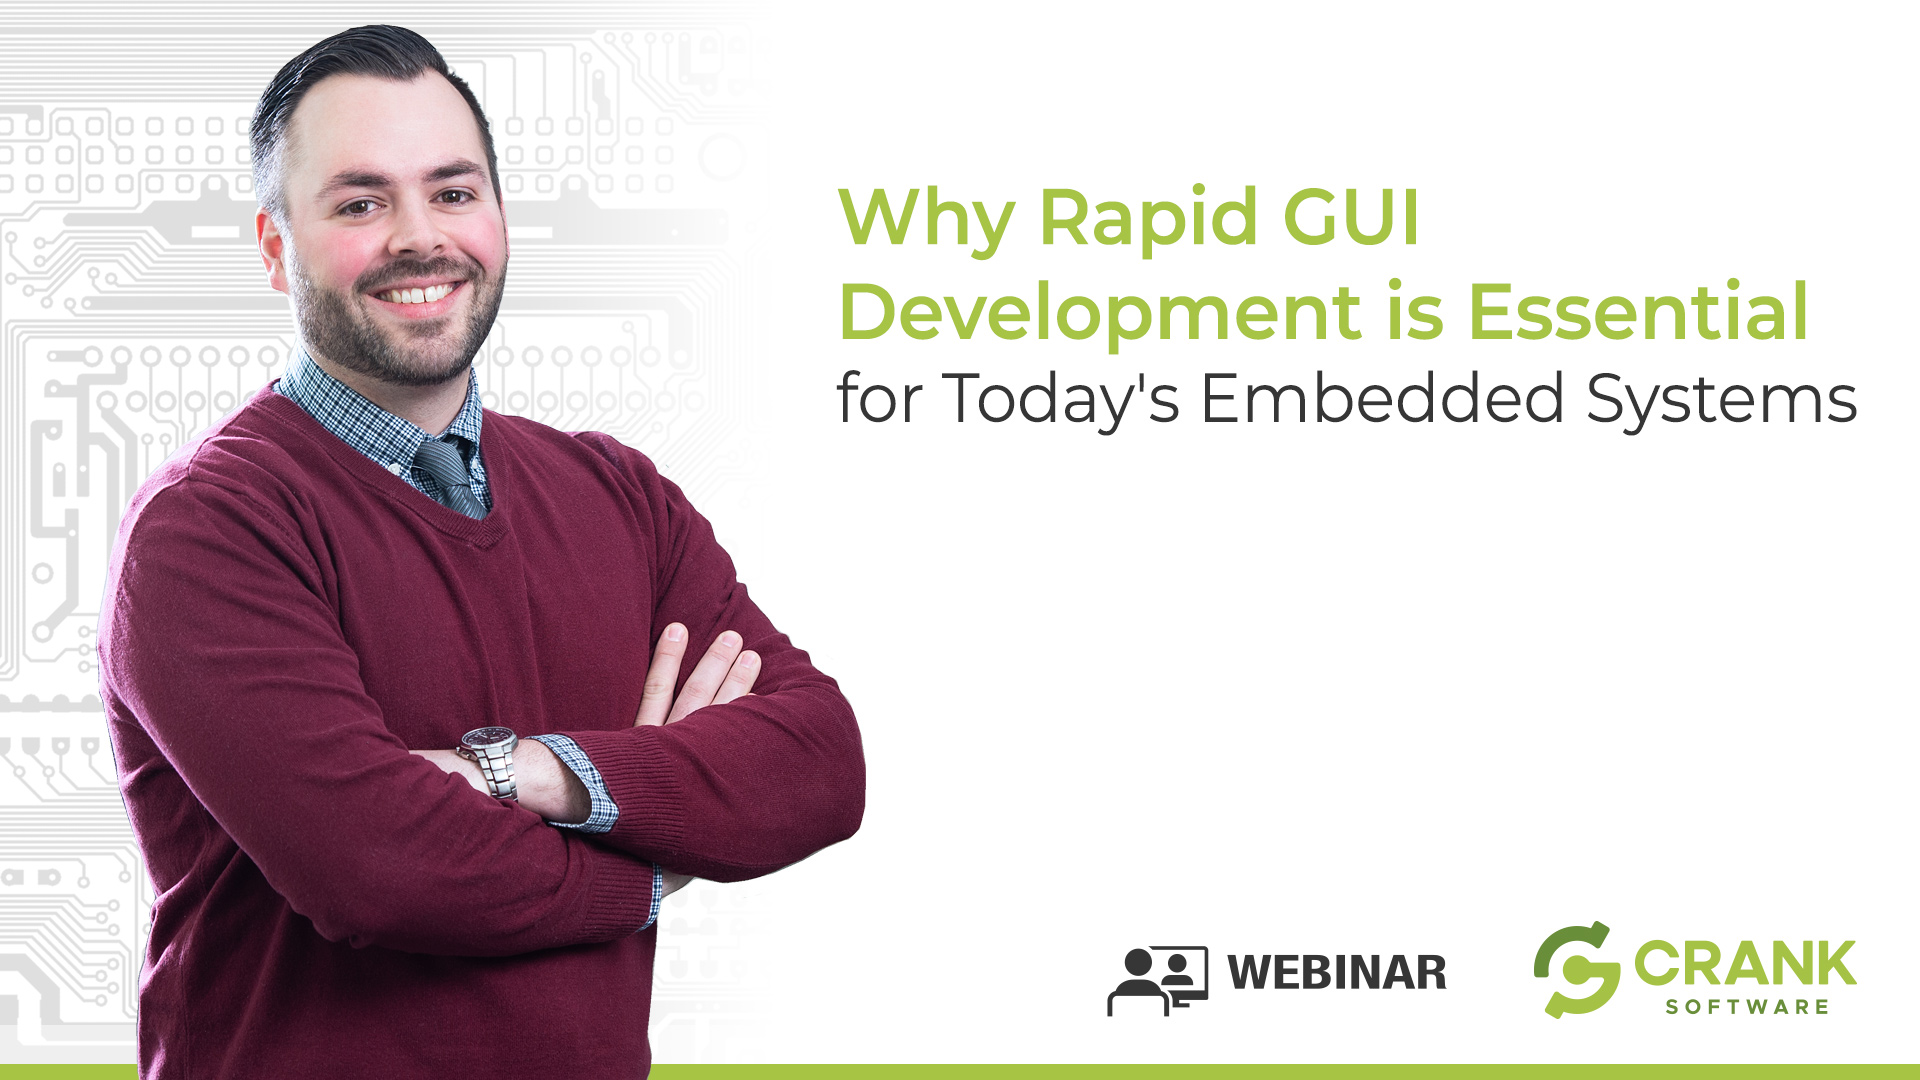 Why_Rapid_GUI_Development_is_Essential_for_Today_s_Embedded_Systems